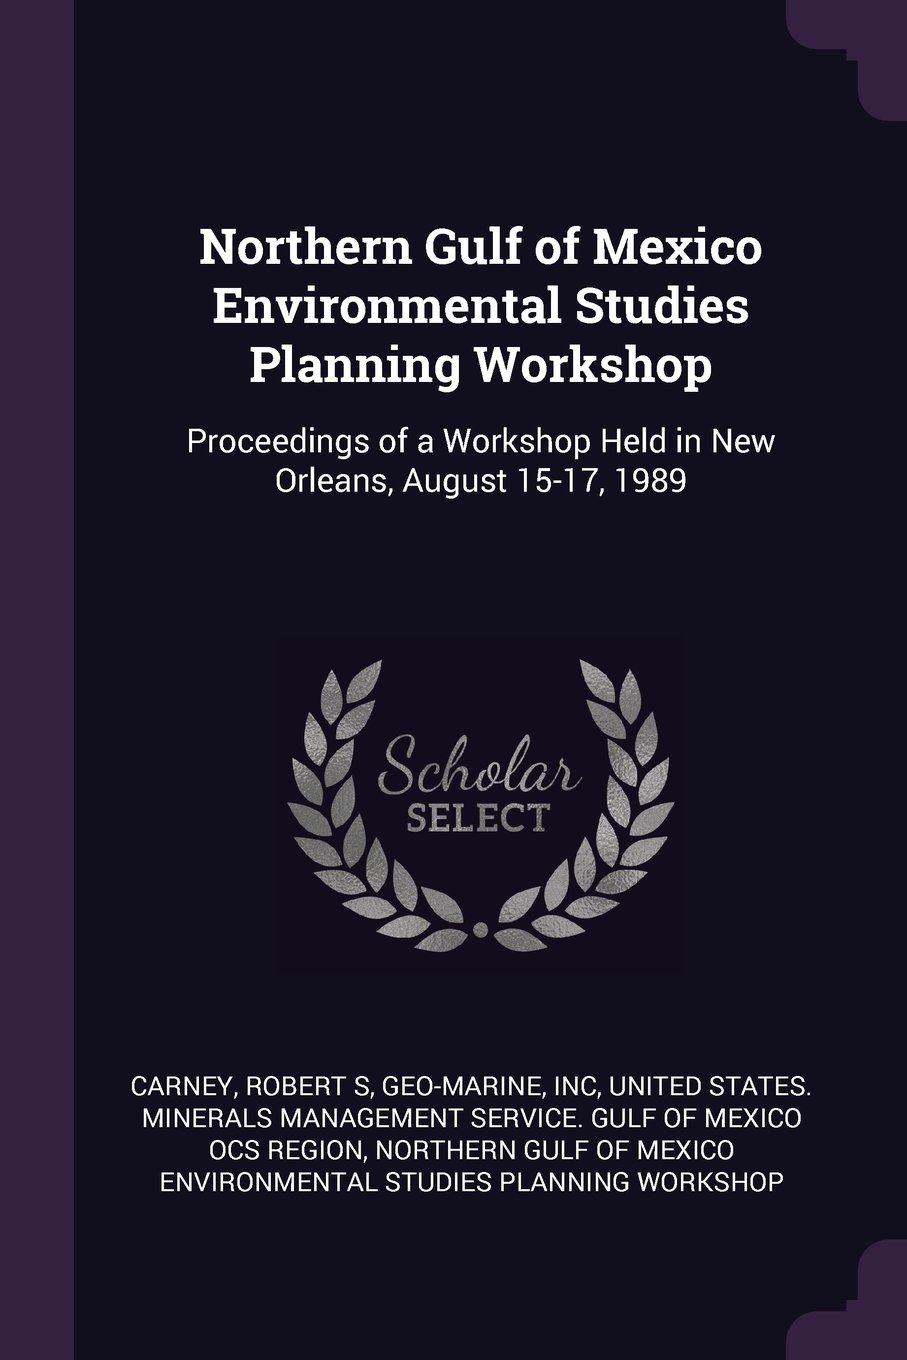 Download Northern Gulf of Mexico Environmental Studies Planning Workshop: Proceedings of a Workshop Held in New Orleans, August 15-17, 1989 ebook